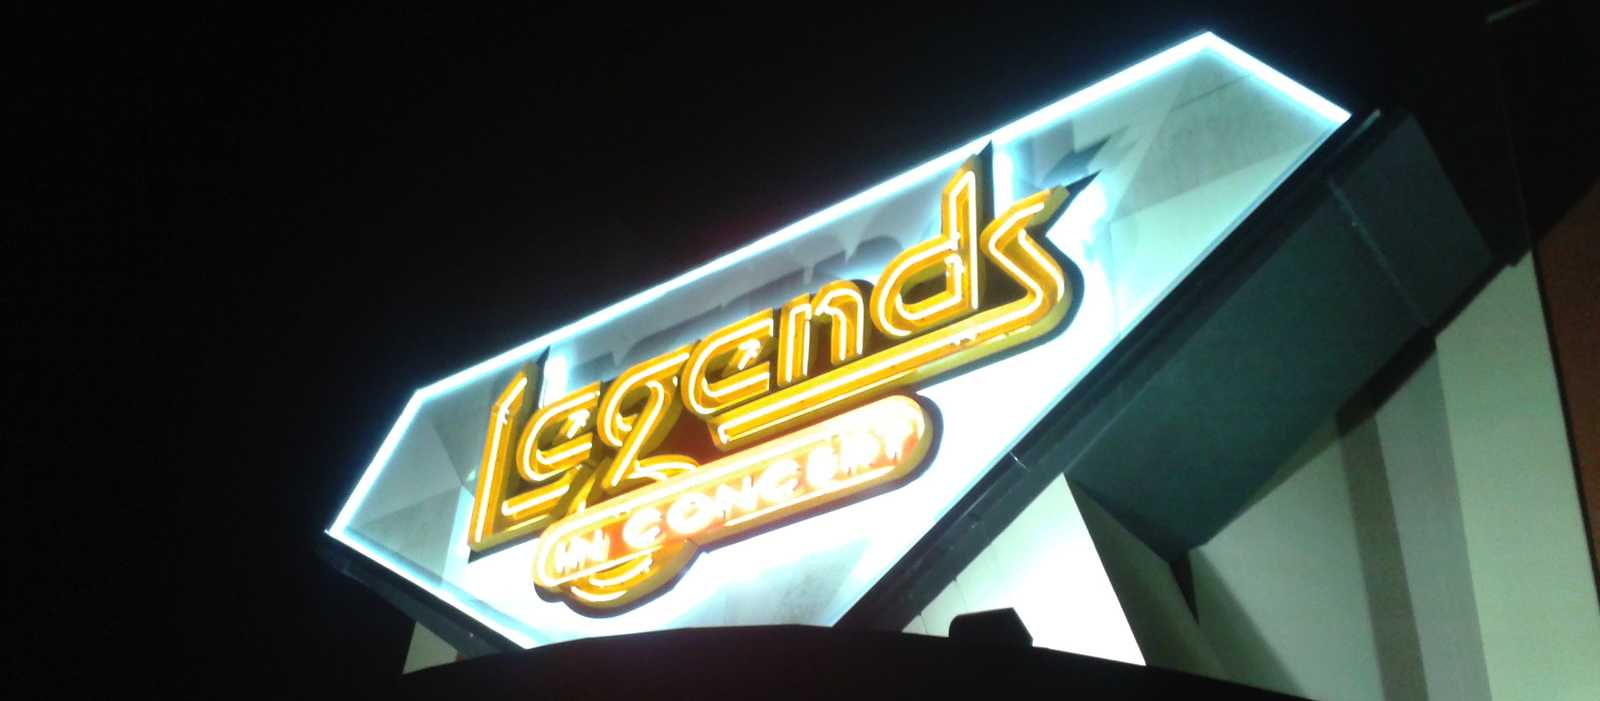 Legends in Concert, Myrtle Beach